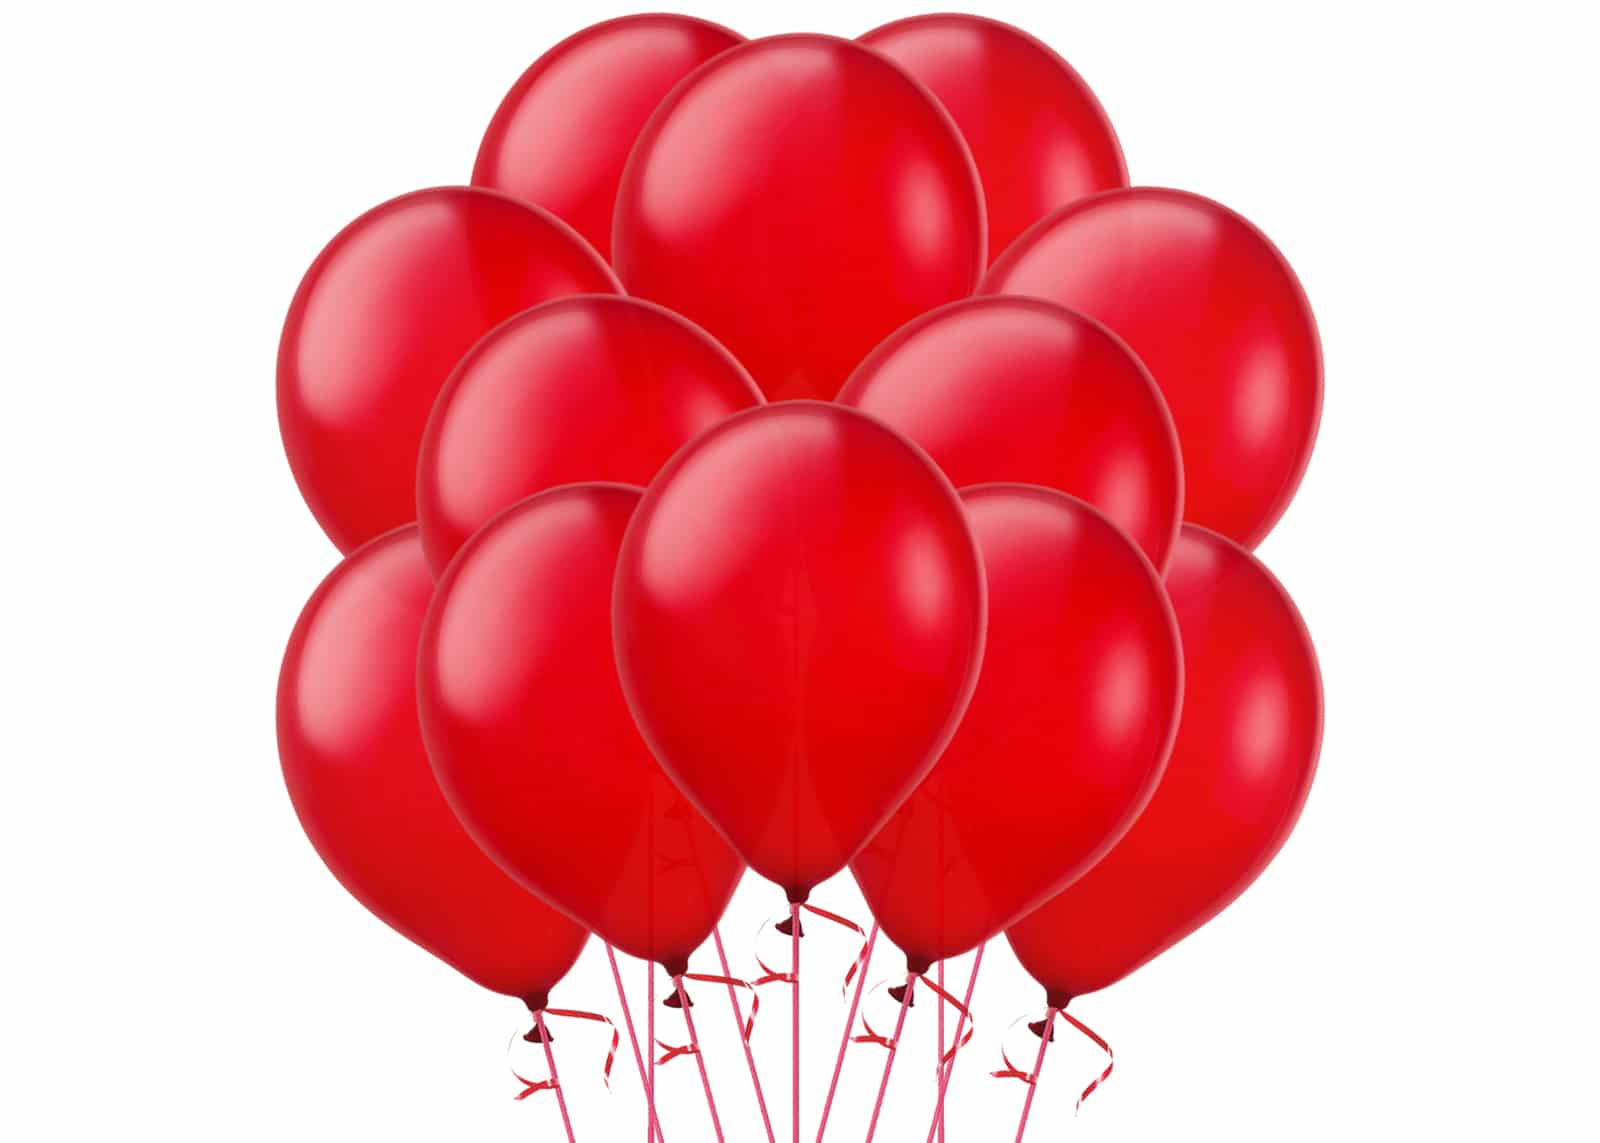 12 Red Balloons